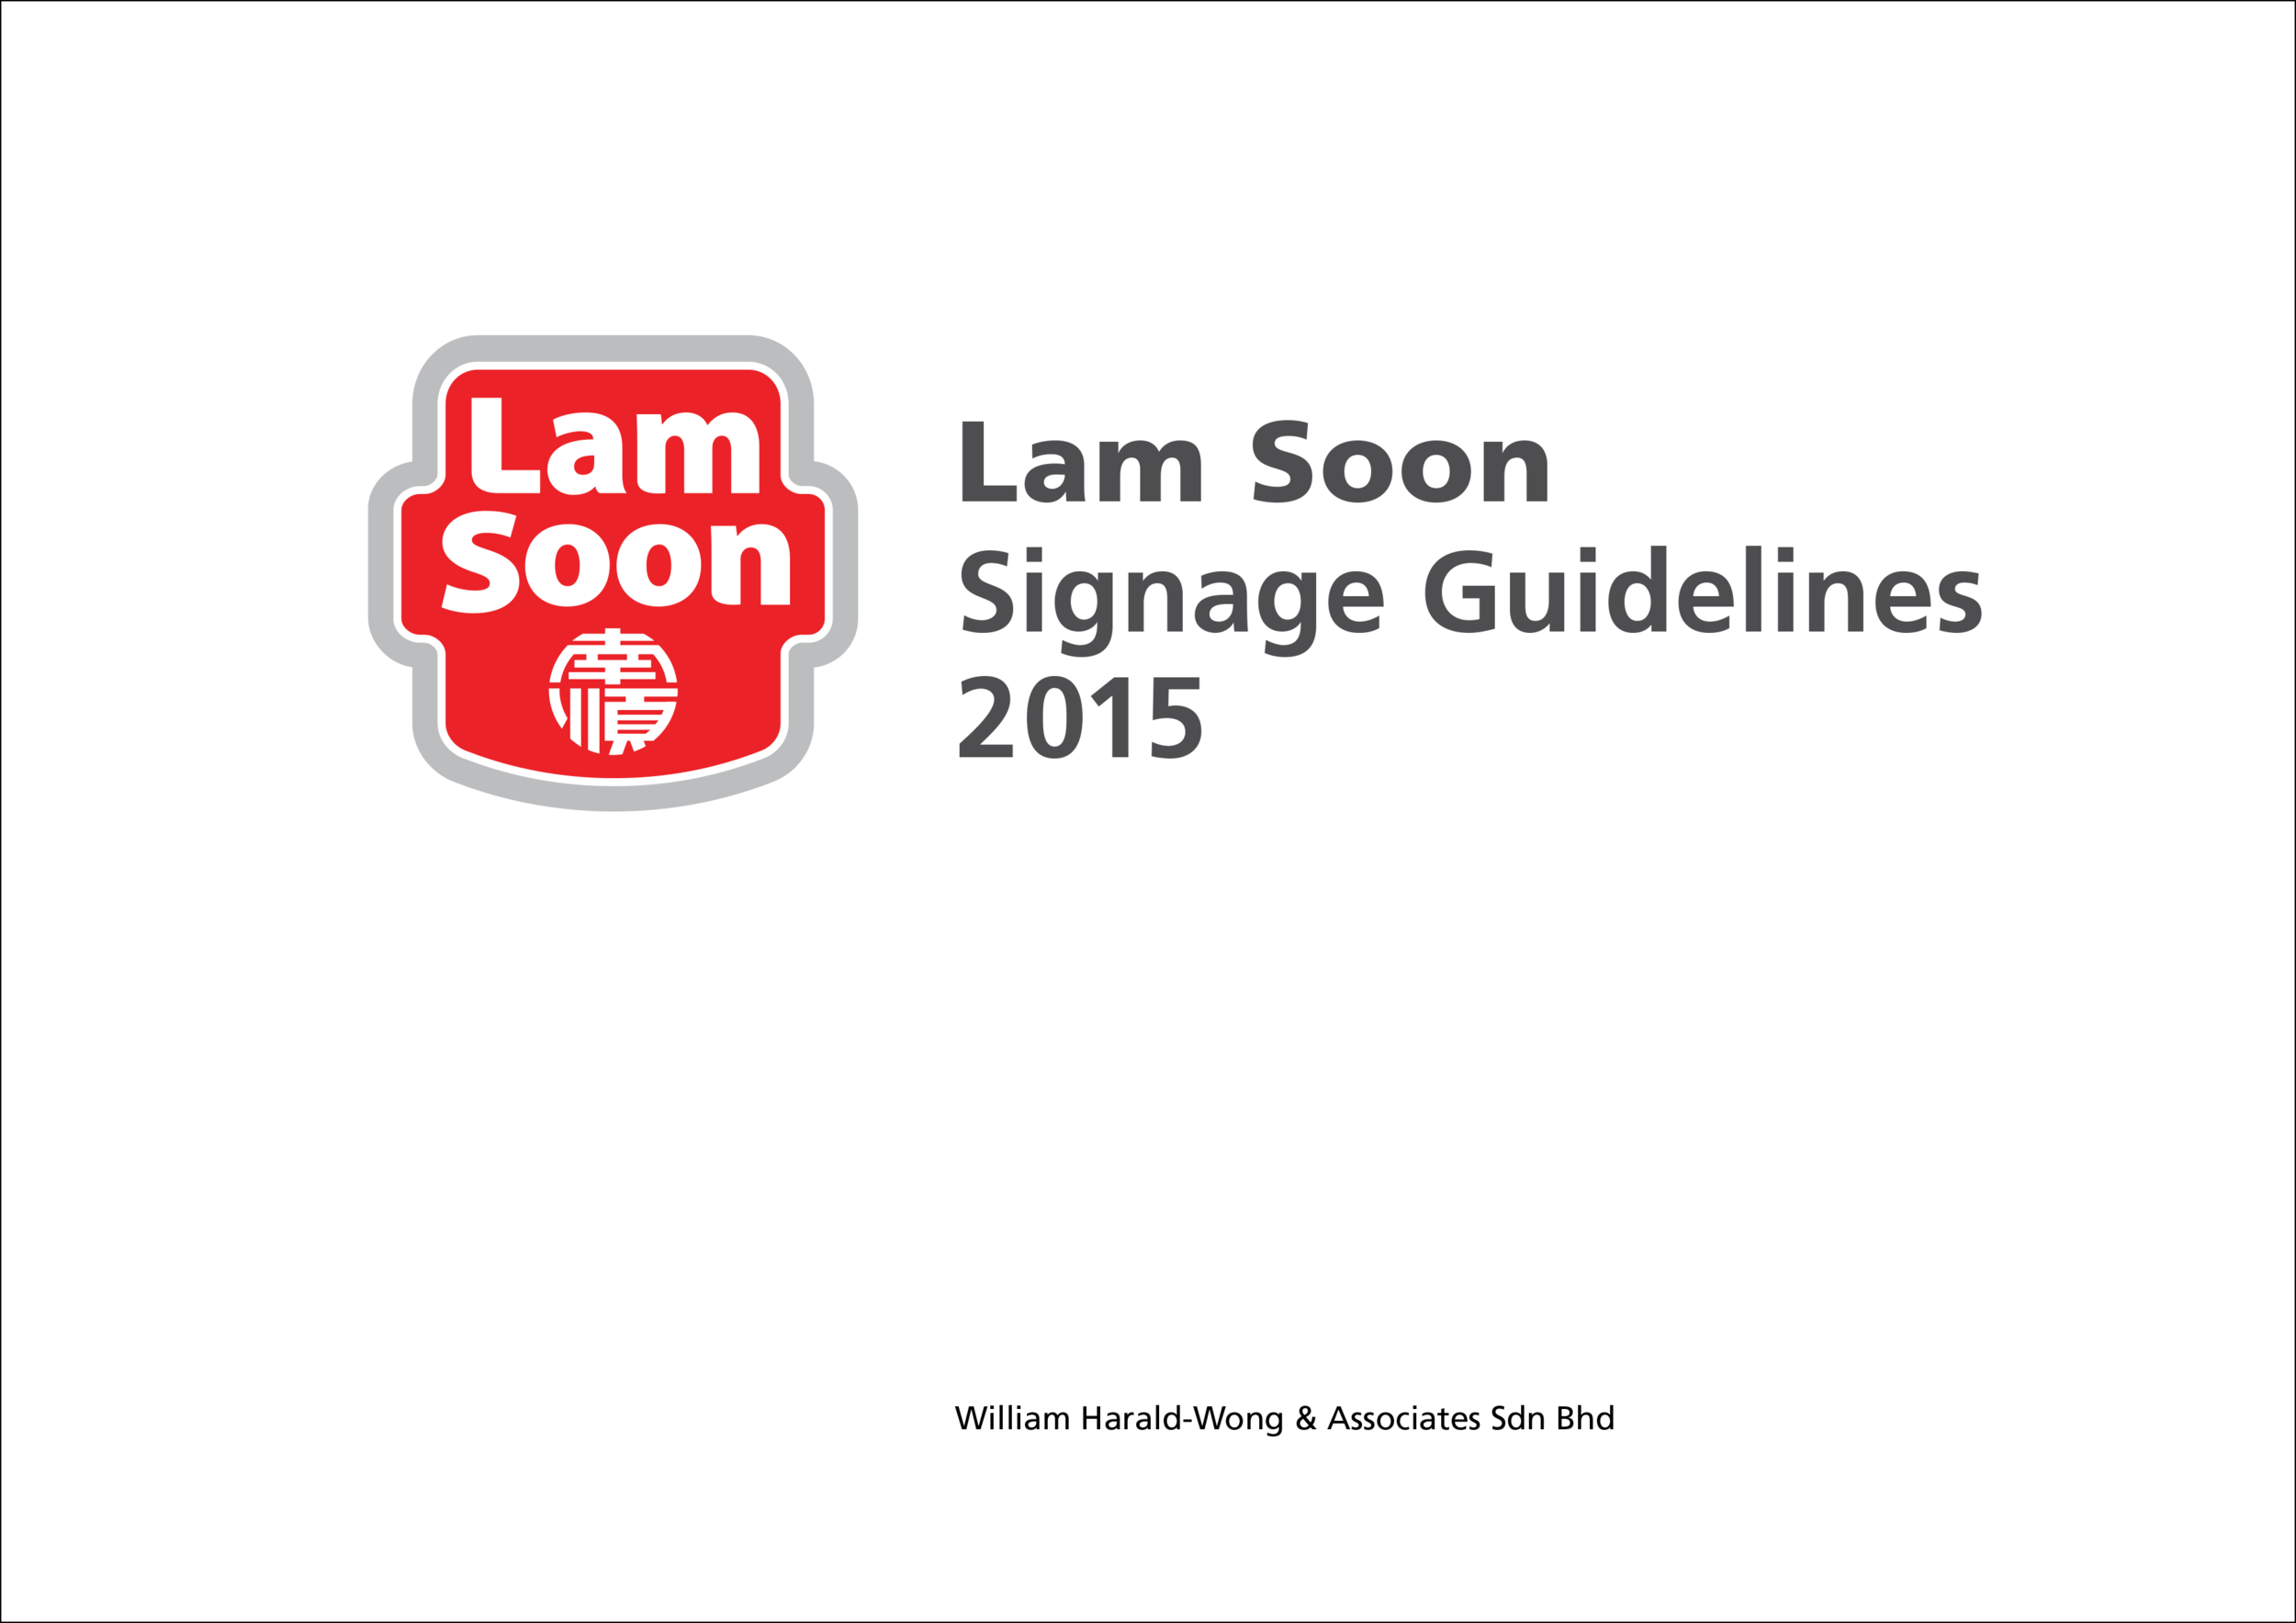 Lam Soon Signage Guidelines_2016-01-10 1_Outline.png